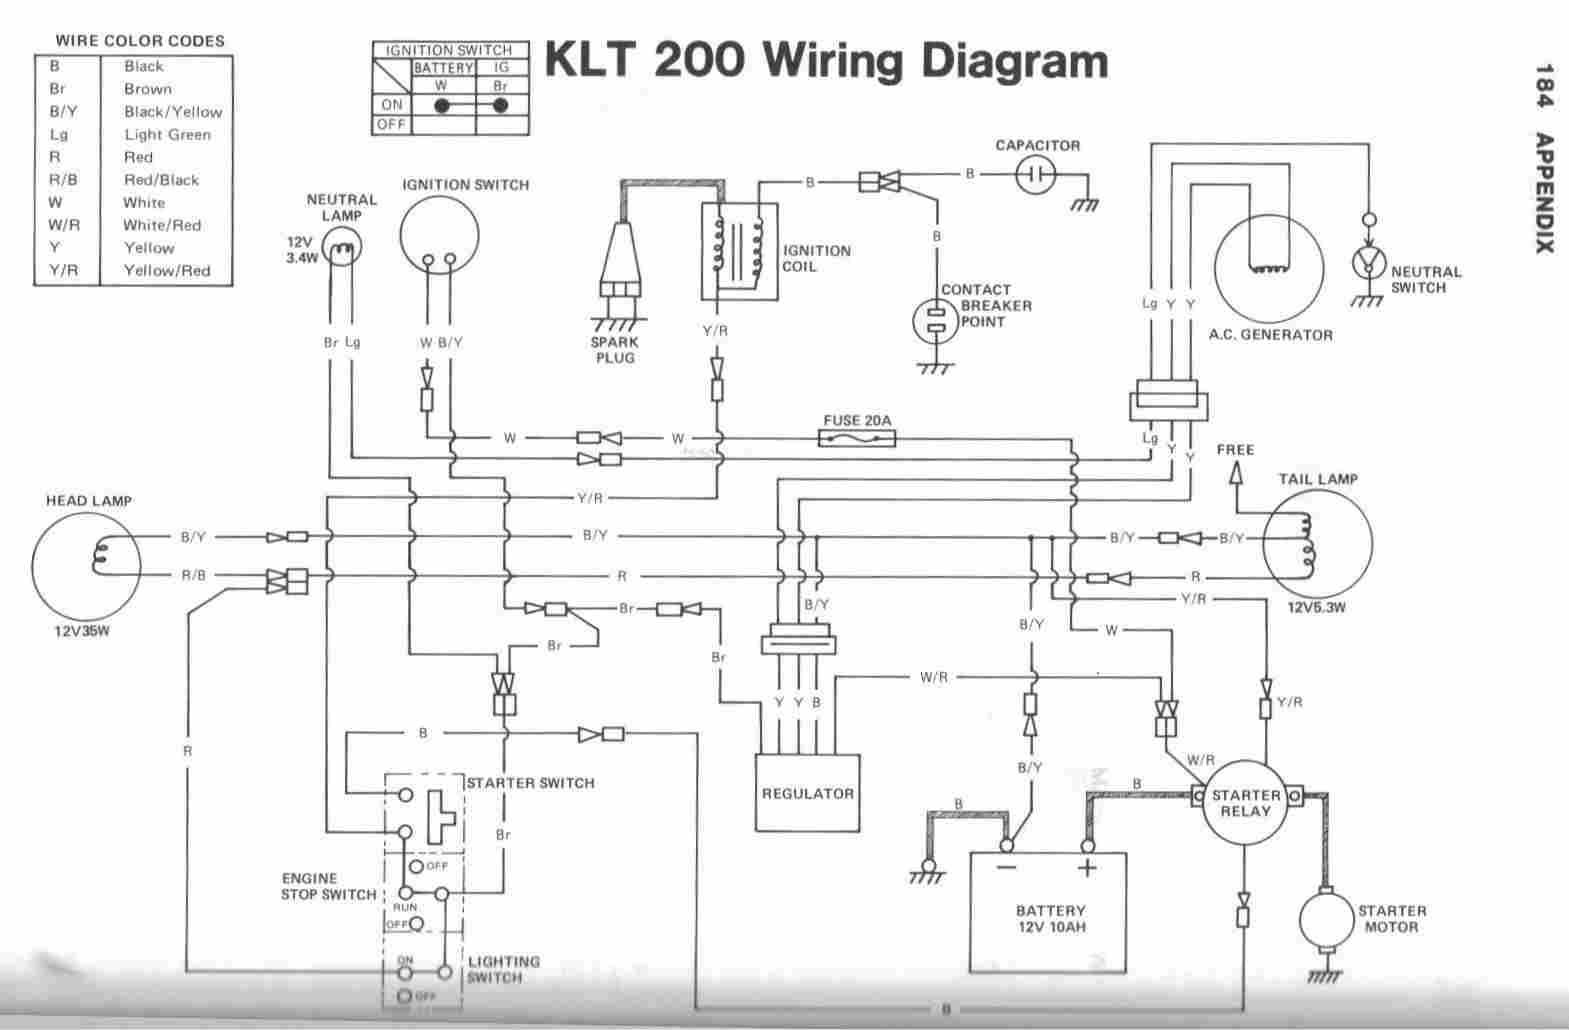 Residential electrical wiring diagrams pdf easy routing for House electrical wiring